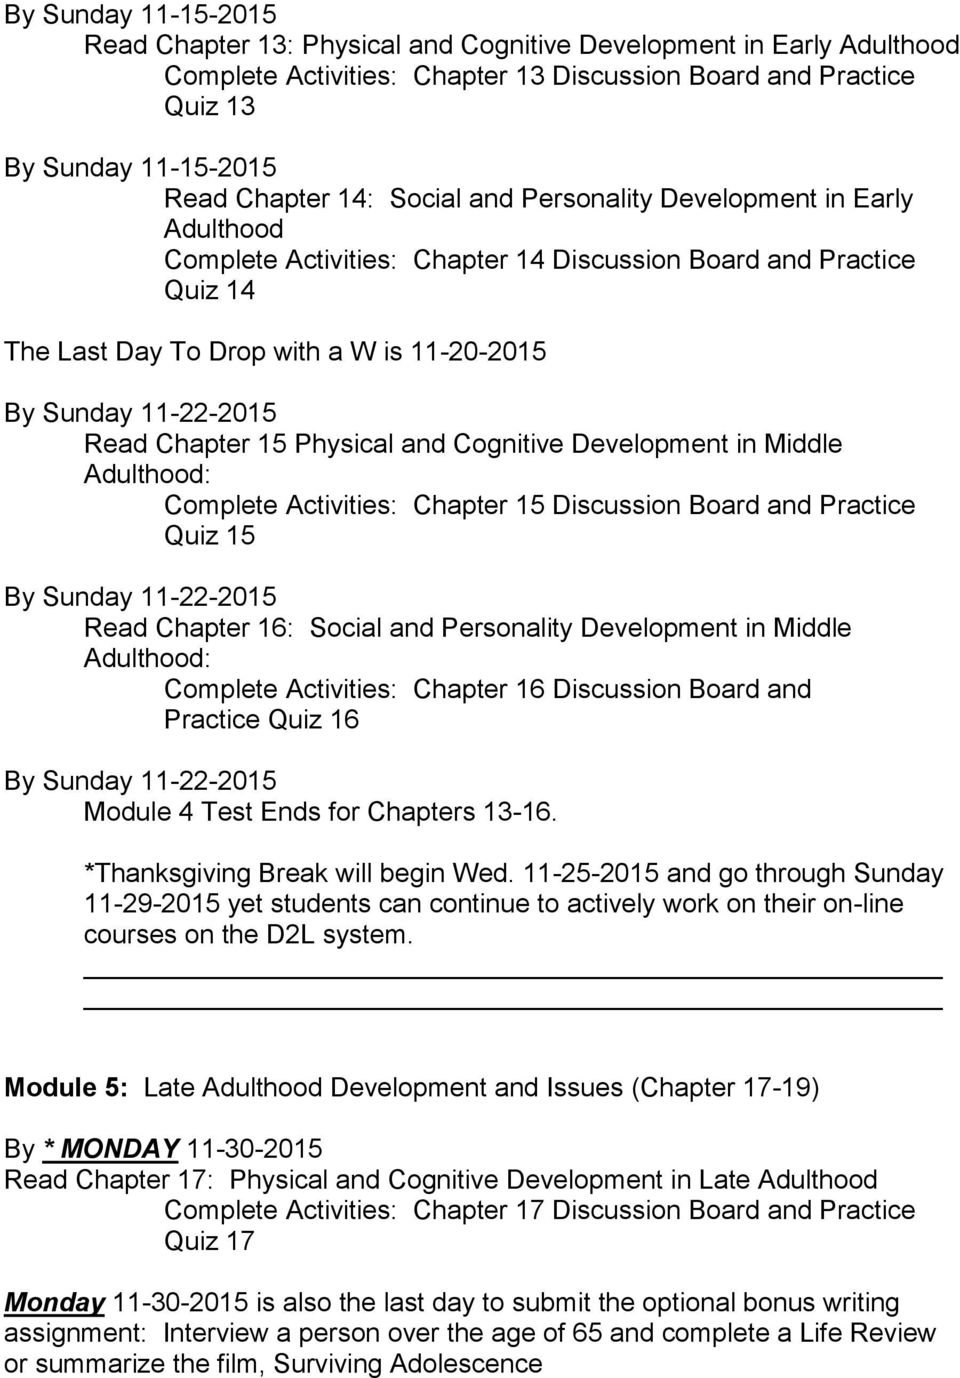 Chapter 15 Physical and Cognitive Development in Middle Adulthood: Complete Activities: Chapter 15 Discussion Board and Practice Quiz 15 By Sunday 11-22-2015 Read Chapter 16: Social and Personality